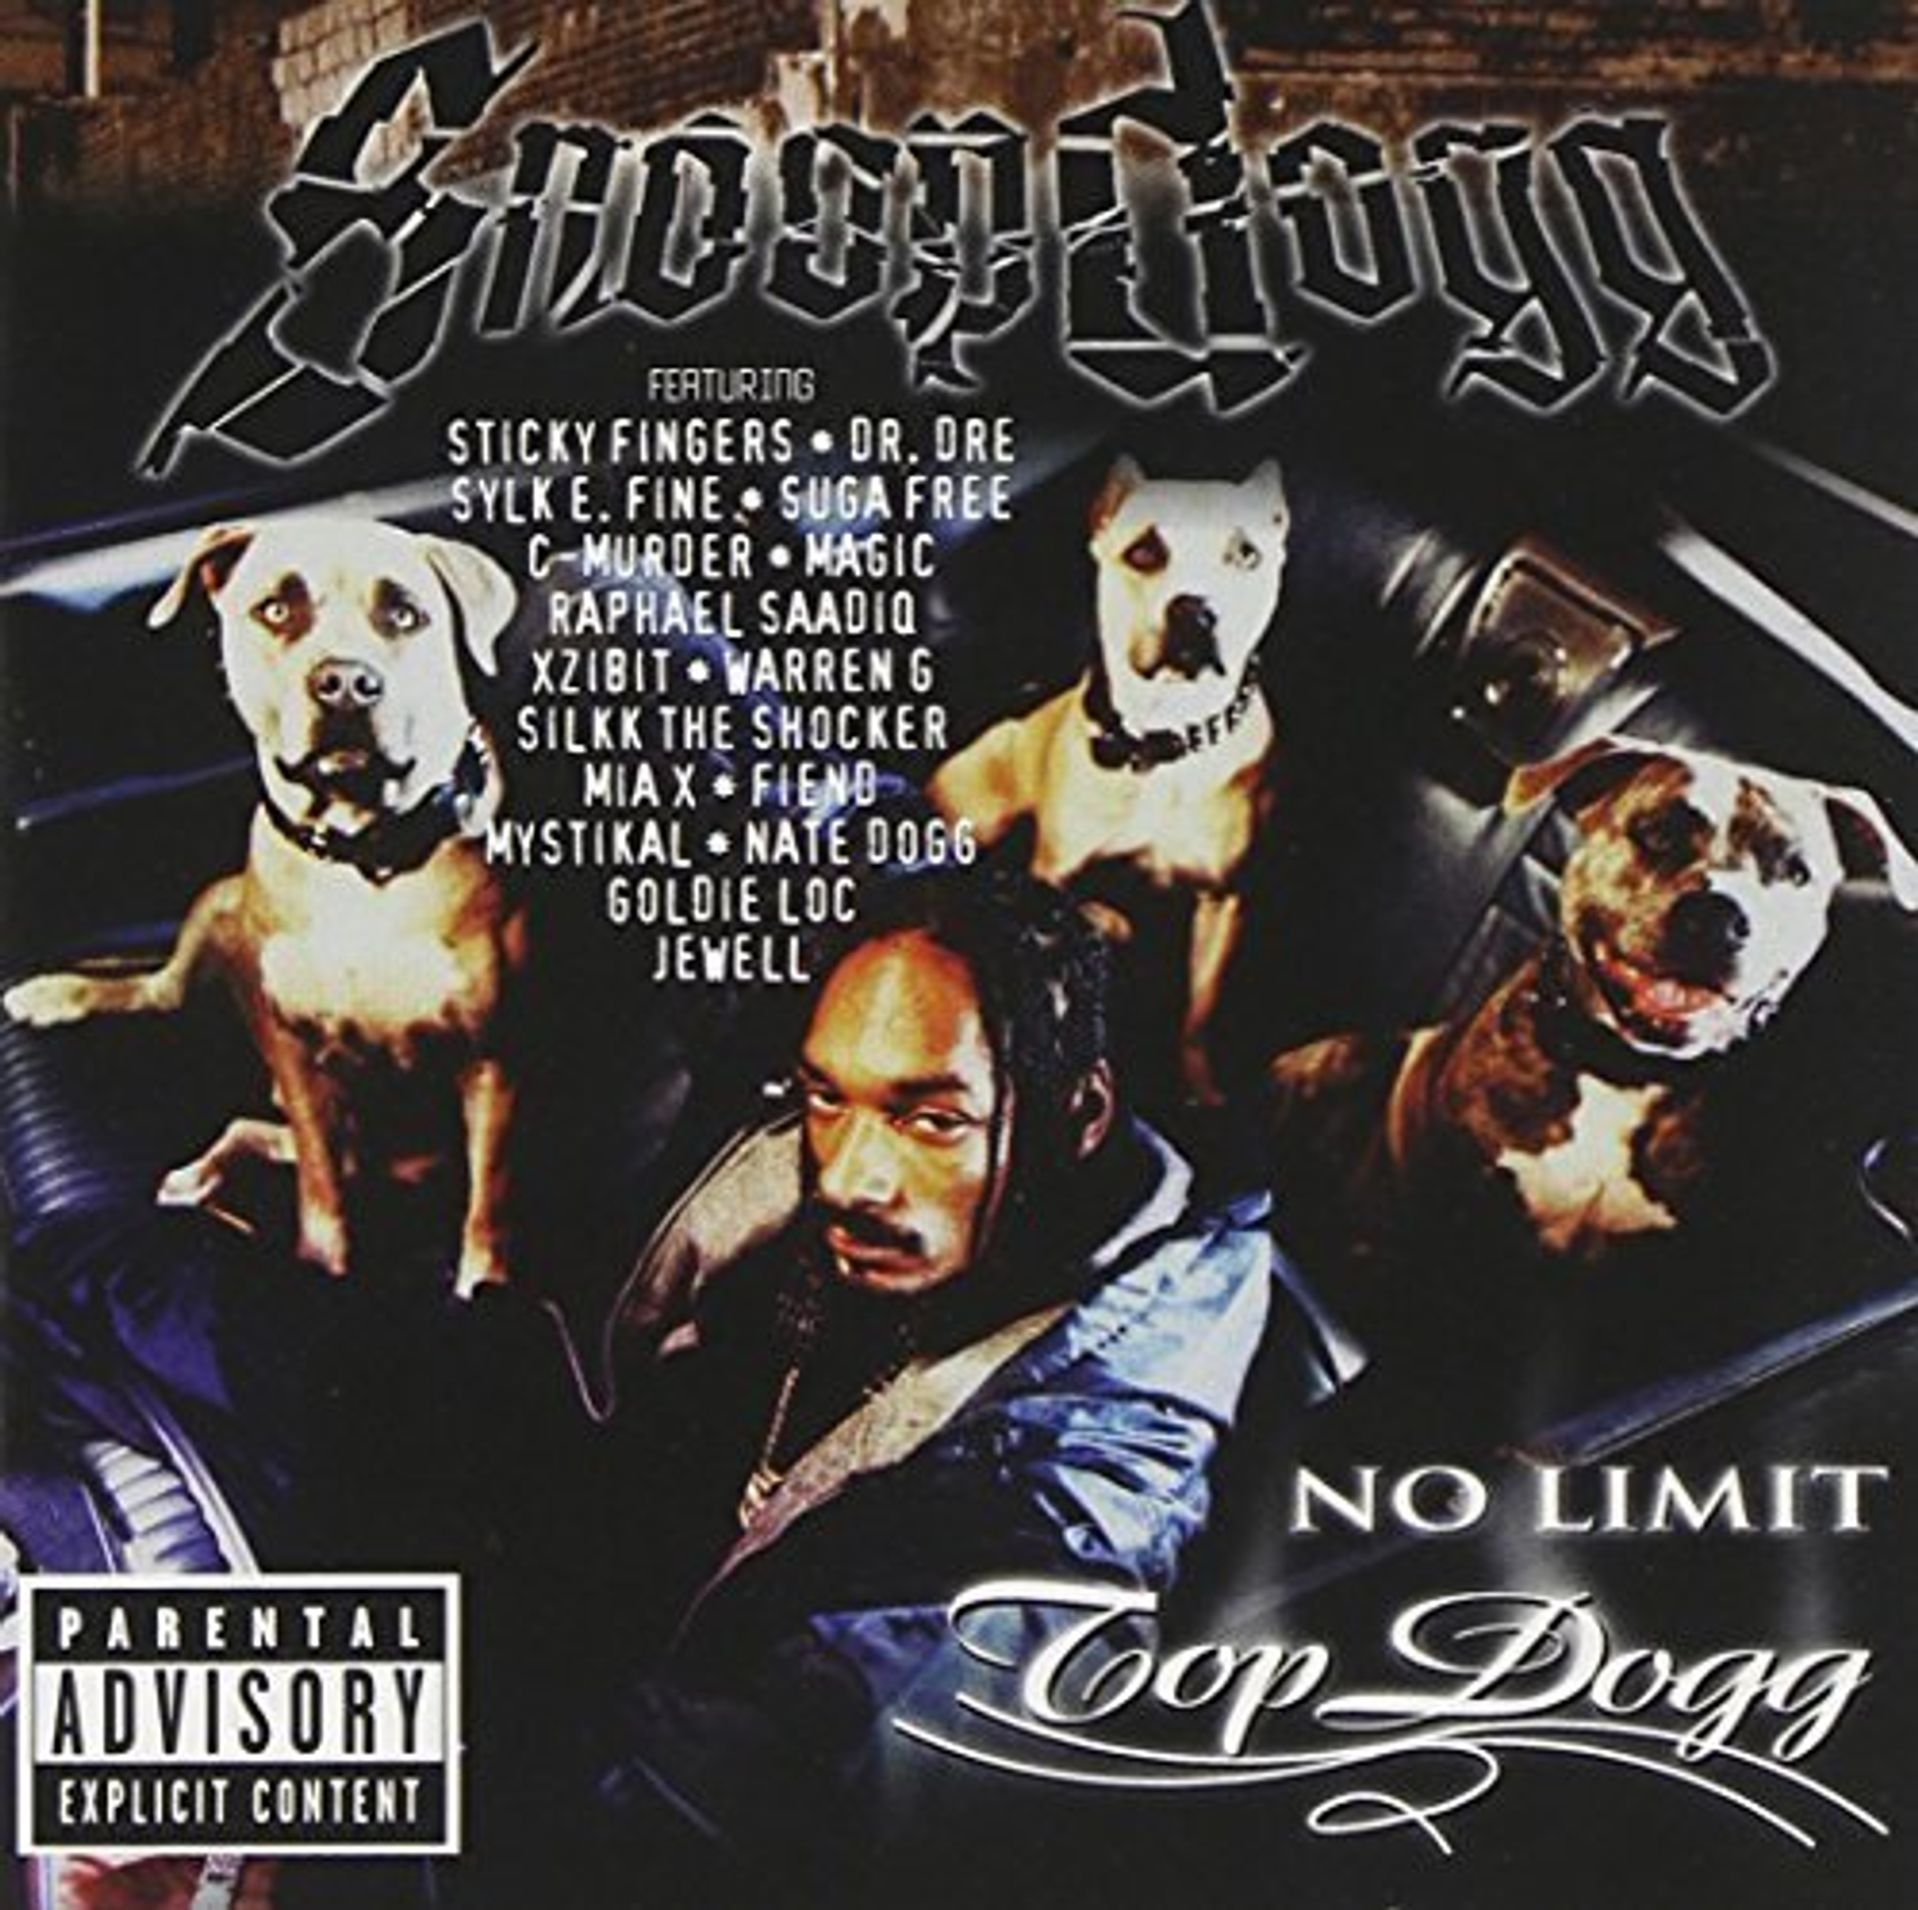 Album Title: No Limit Top Dogg by: Snoop Dogg